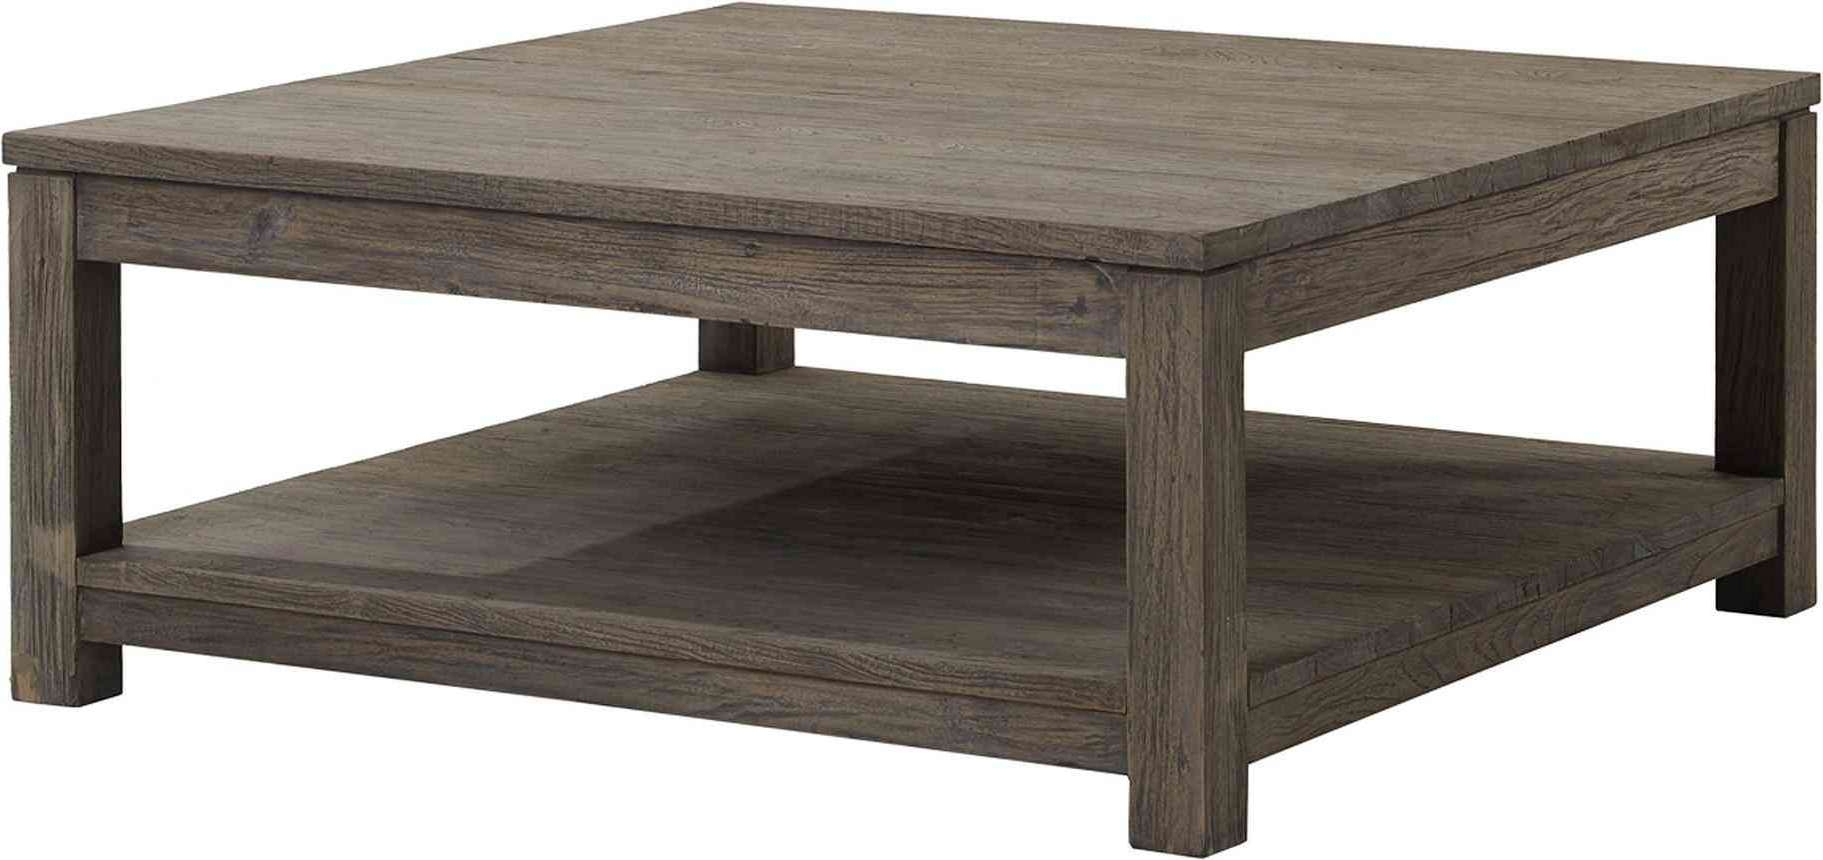 Coffee Tables : Square Wooden Coffee Table With Drawers Rustic Intended For Widely Used Square Wooden Coffee Tables (View 3 of 20)